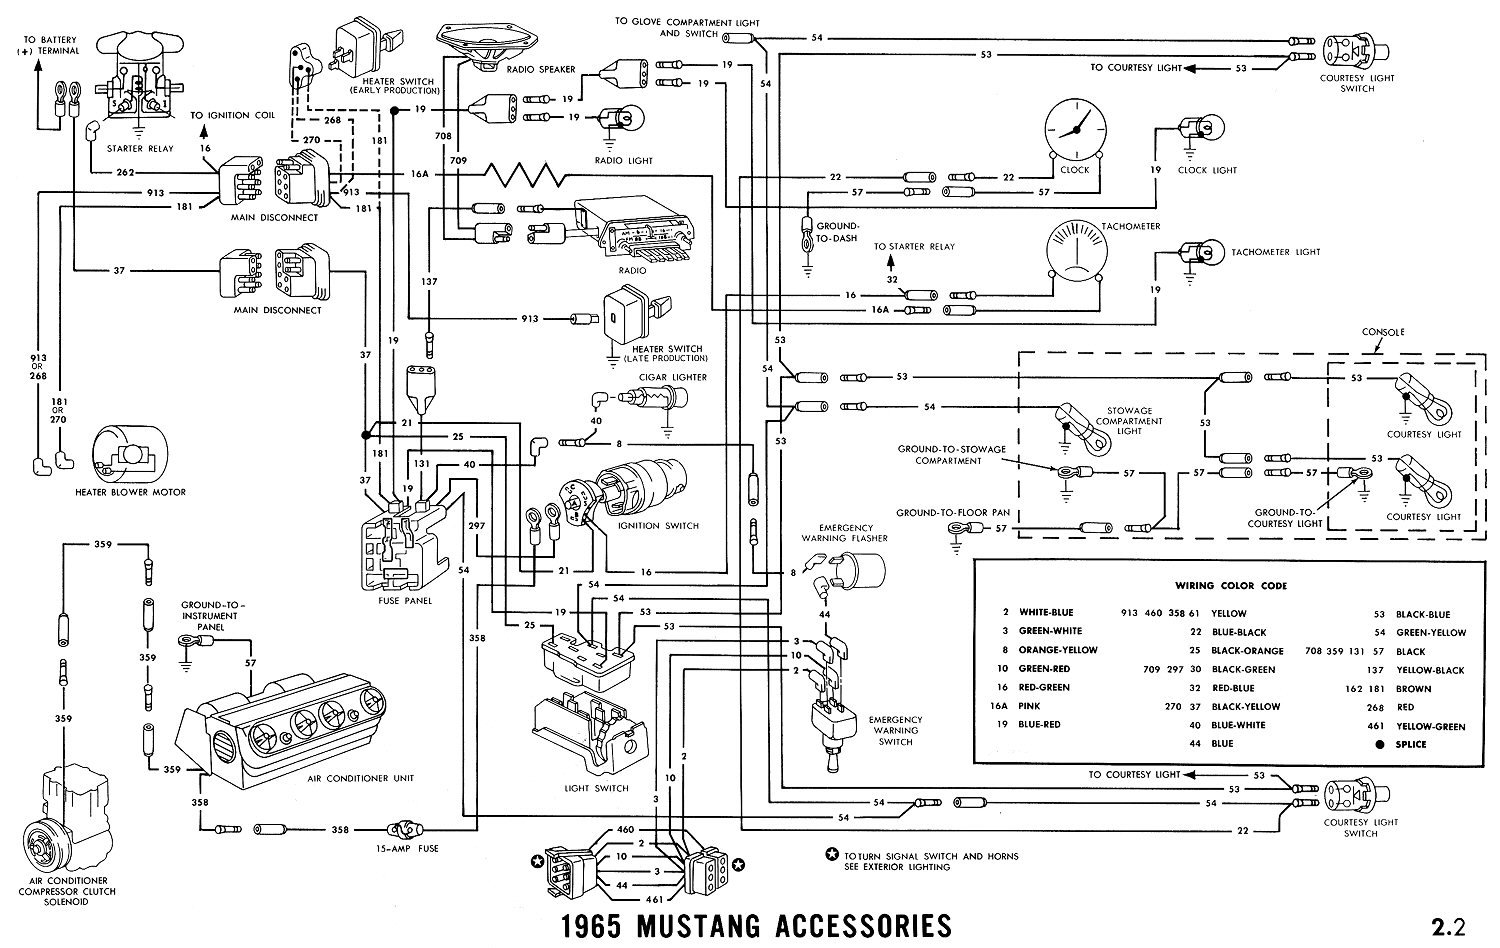 93554d1268999911 1965 mustang radio wiring connections 1965i 1965 mustang radio wiring connections? ford mustang forum GM Radio Wiring Diagram at fashall.co